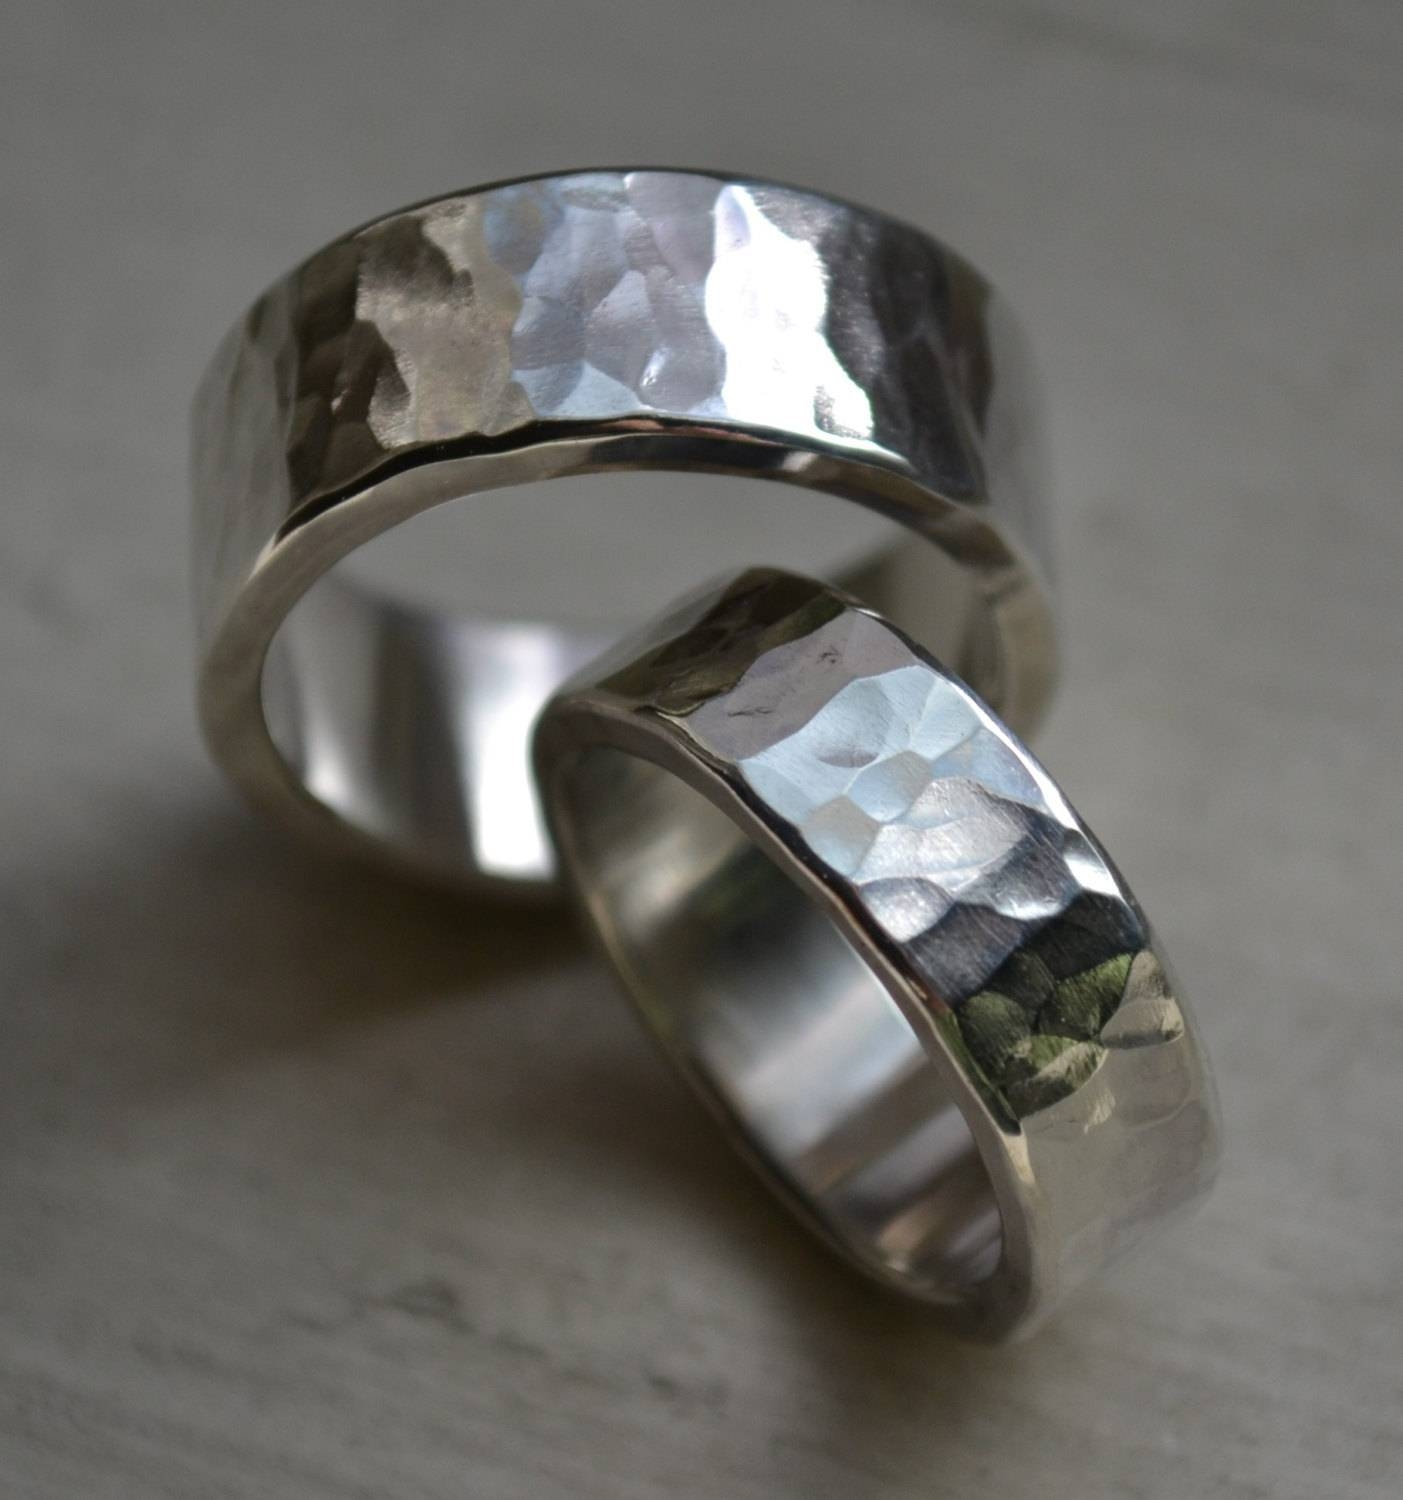 Exotic Design Wedding Rings Louisville Ky Lovely Tradition Of Throughout Nashville Wedding Bands (View 1 of 11)